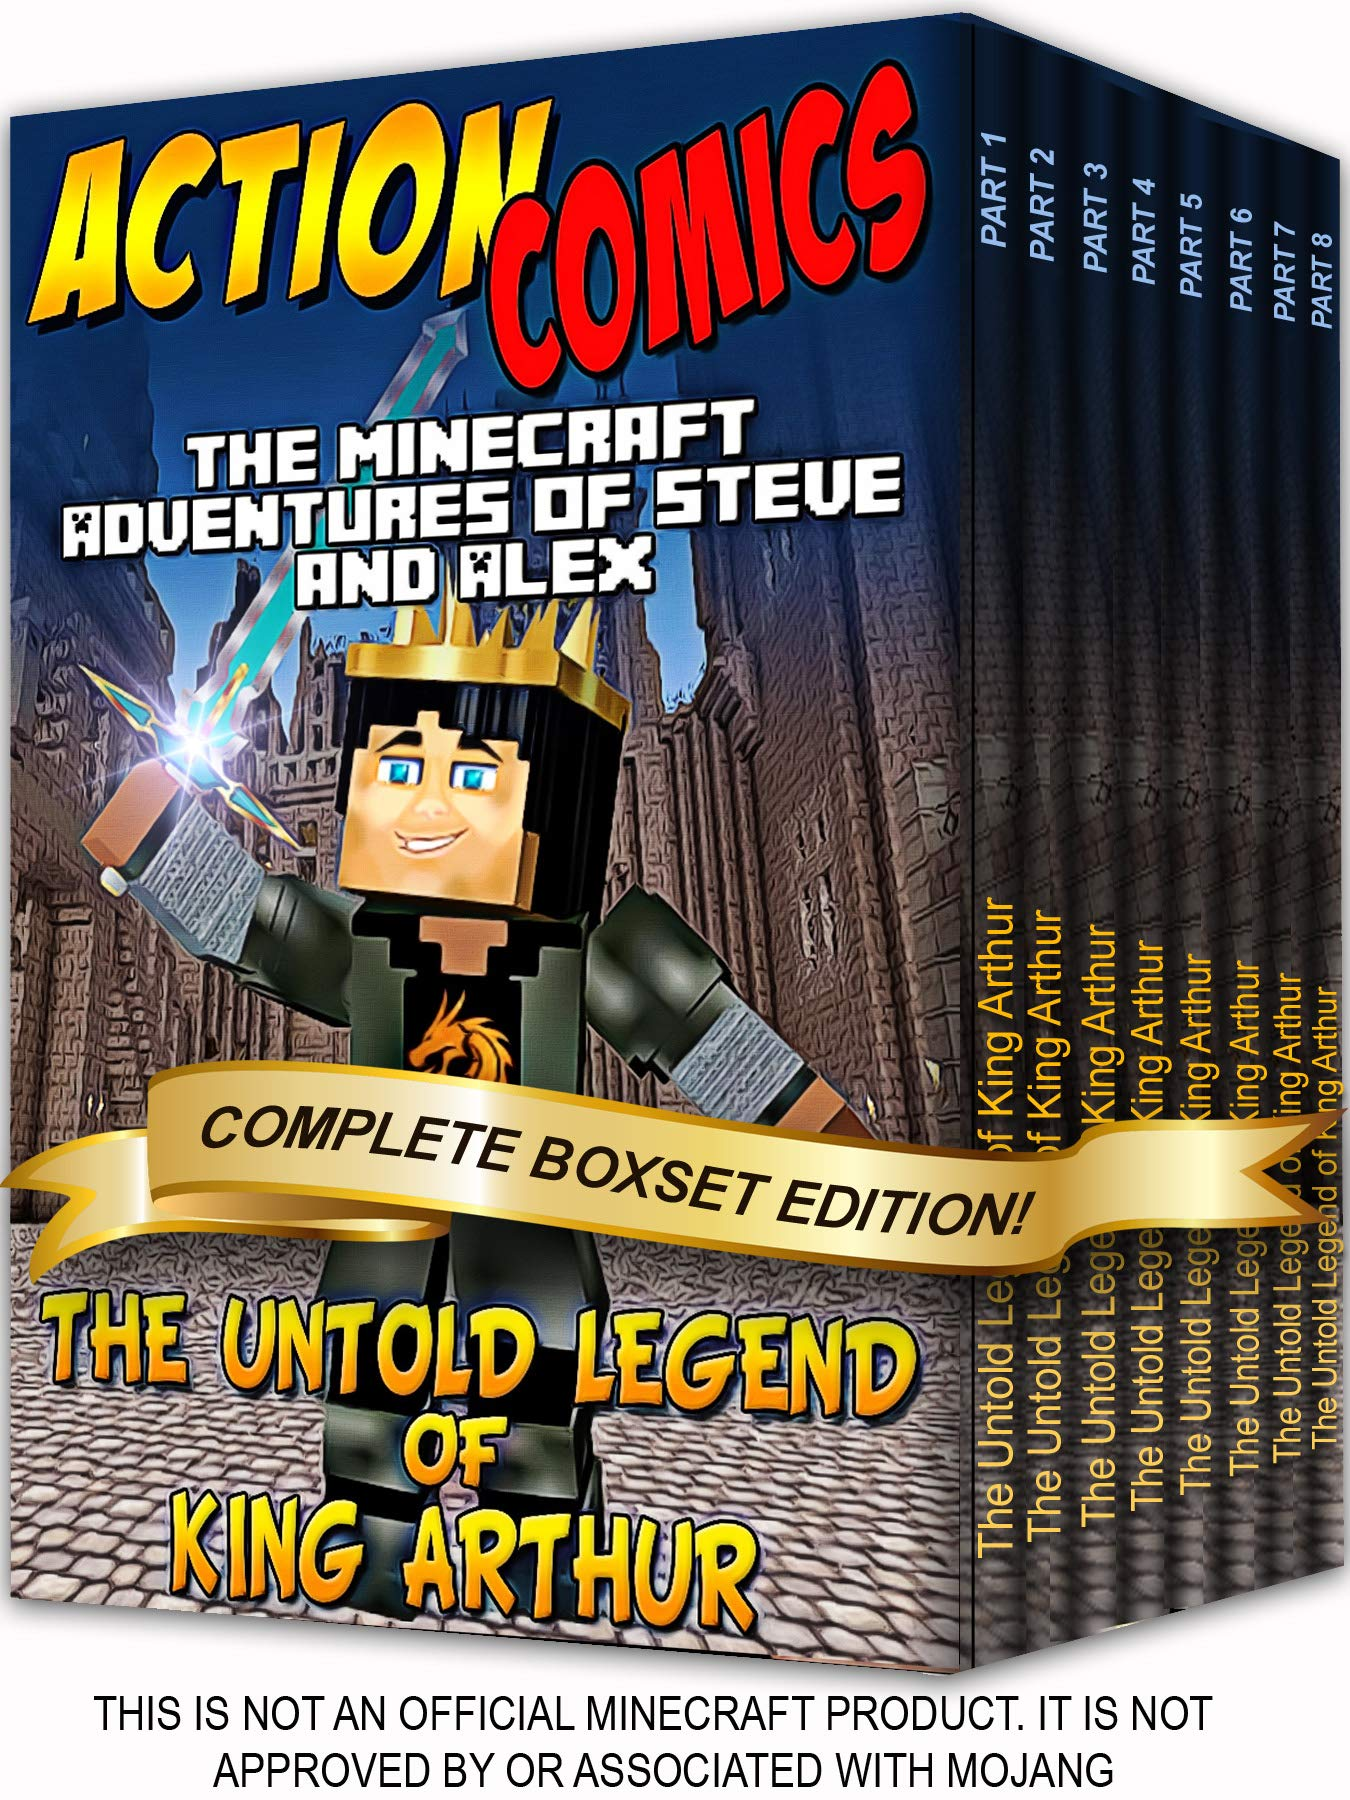 Action Comics Boxset: The Minecraft Adventures of Steve and Alex: The Untold Legend of King Arthur - Complete Boxset Edition (Parts 1 - 8) (Minecraft Steve and Alex Adventures Boxset Series Book 13)